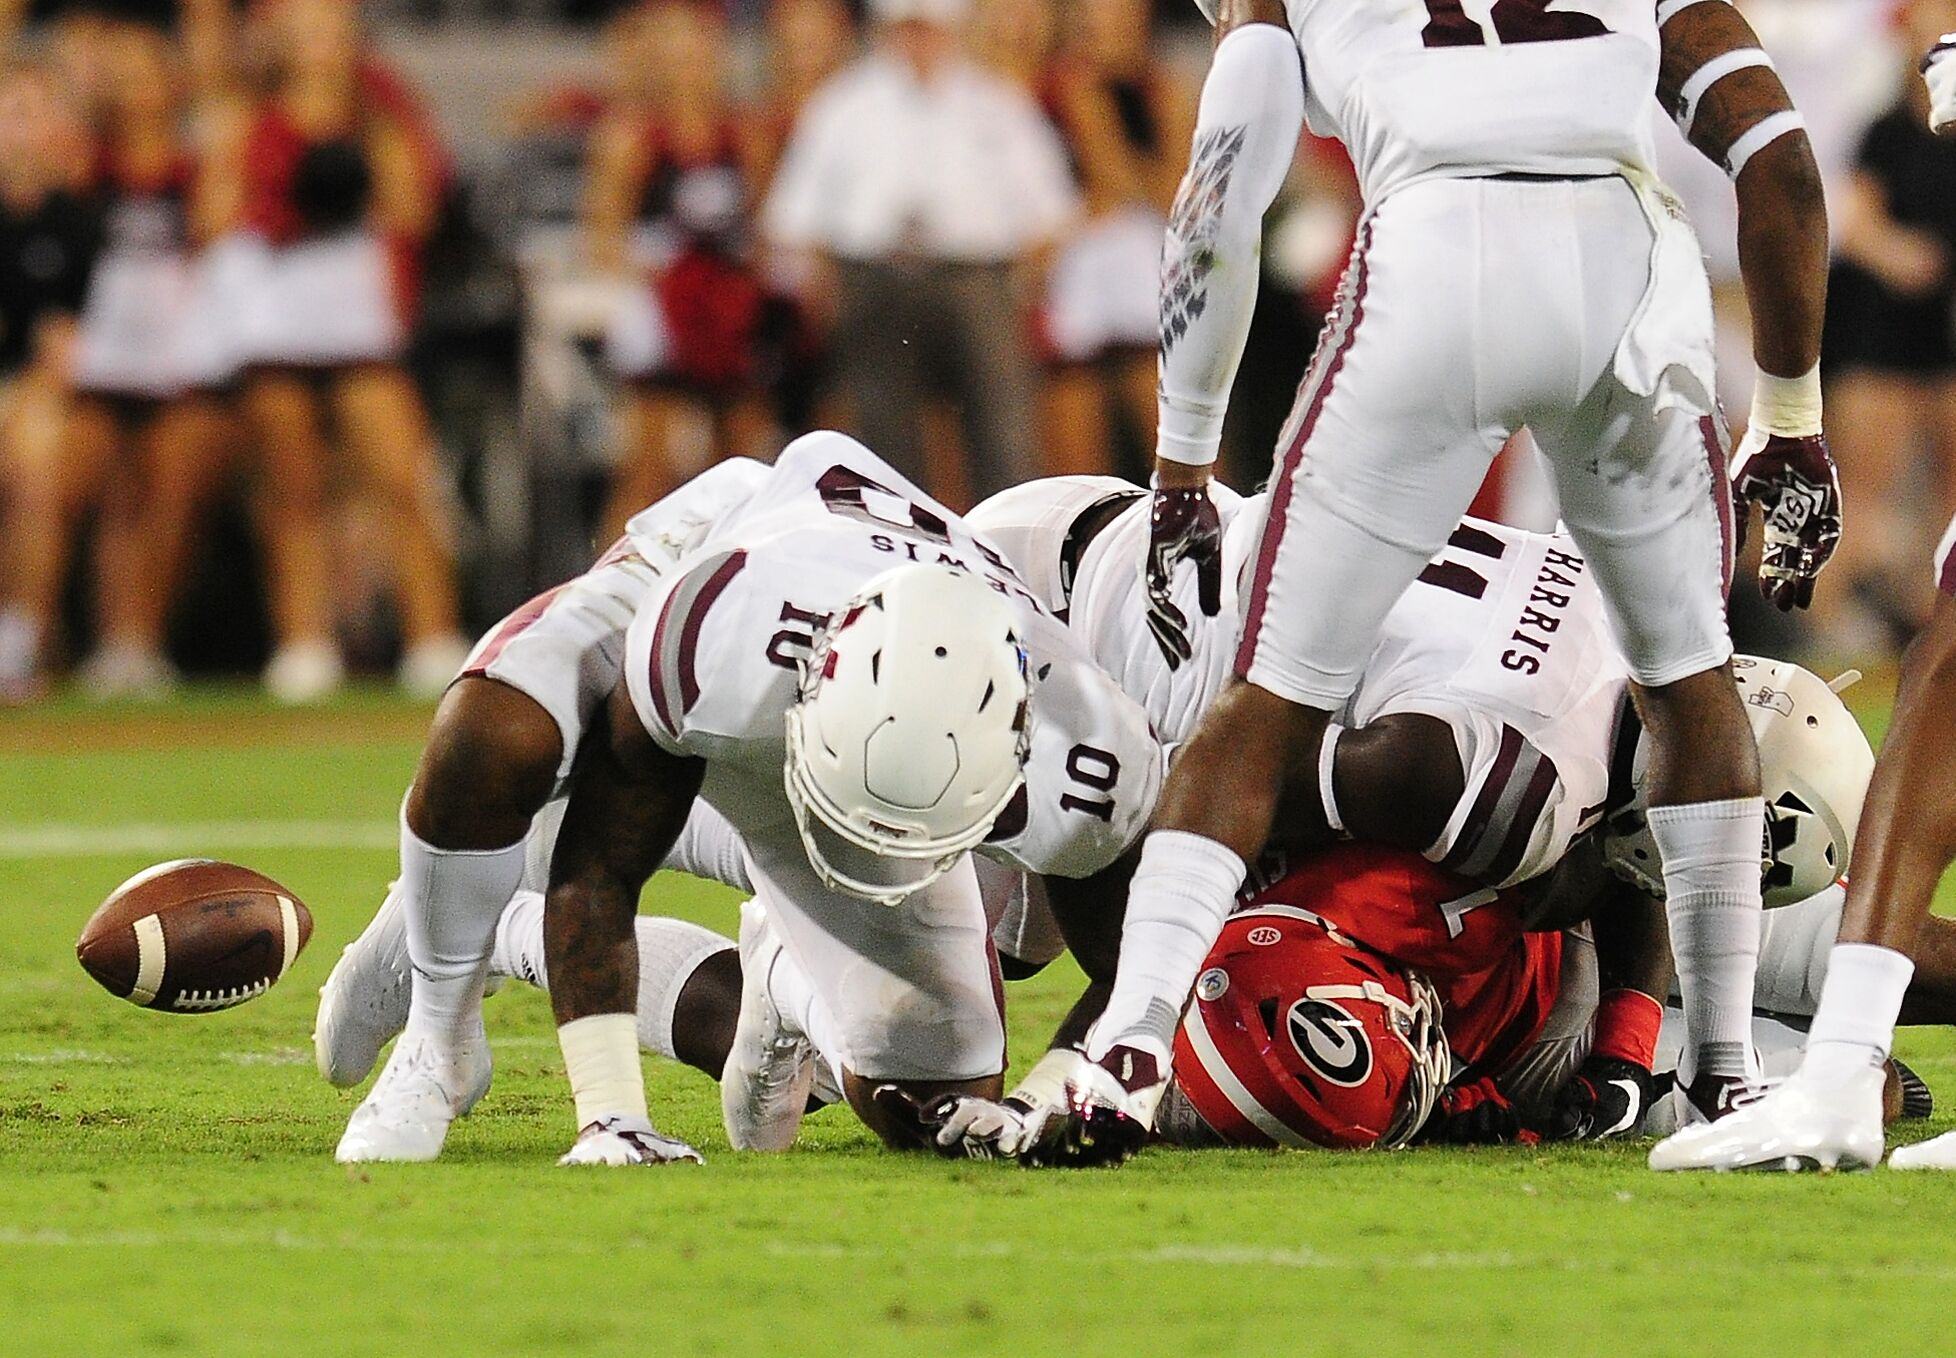 Athens Ga September 23 D Andre Swift 7 Of The Georgia Bulldogs Fumbles After Being Tackled By Leo Lewis 10 Anddez Harris 11 Mississippi State